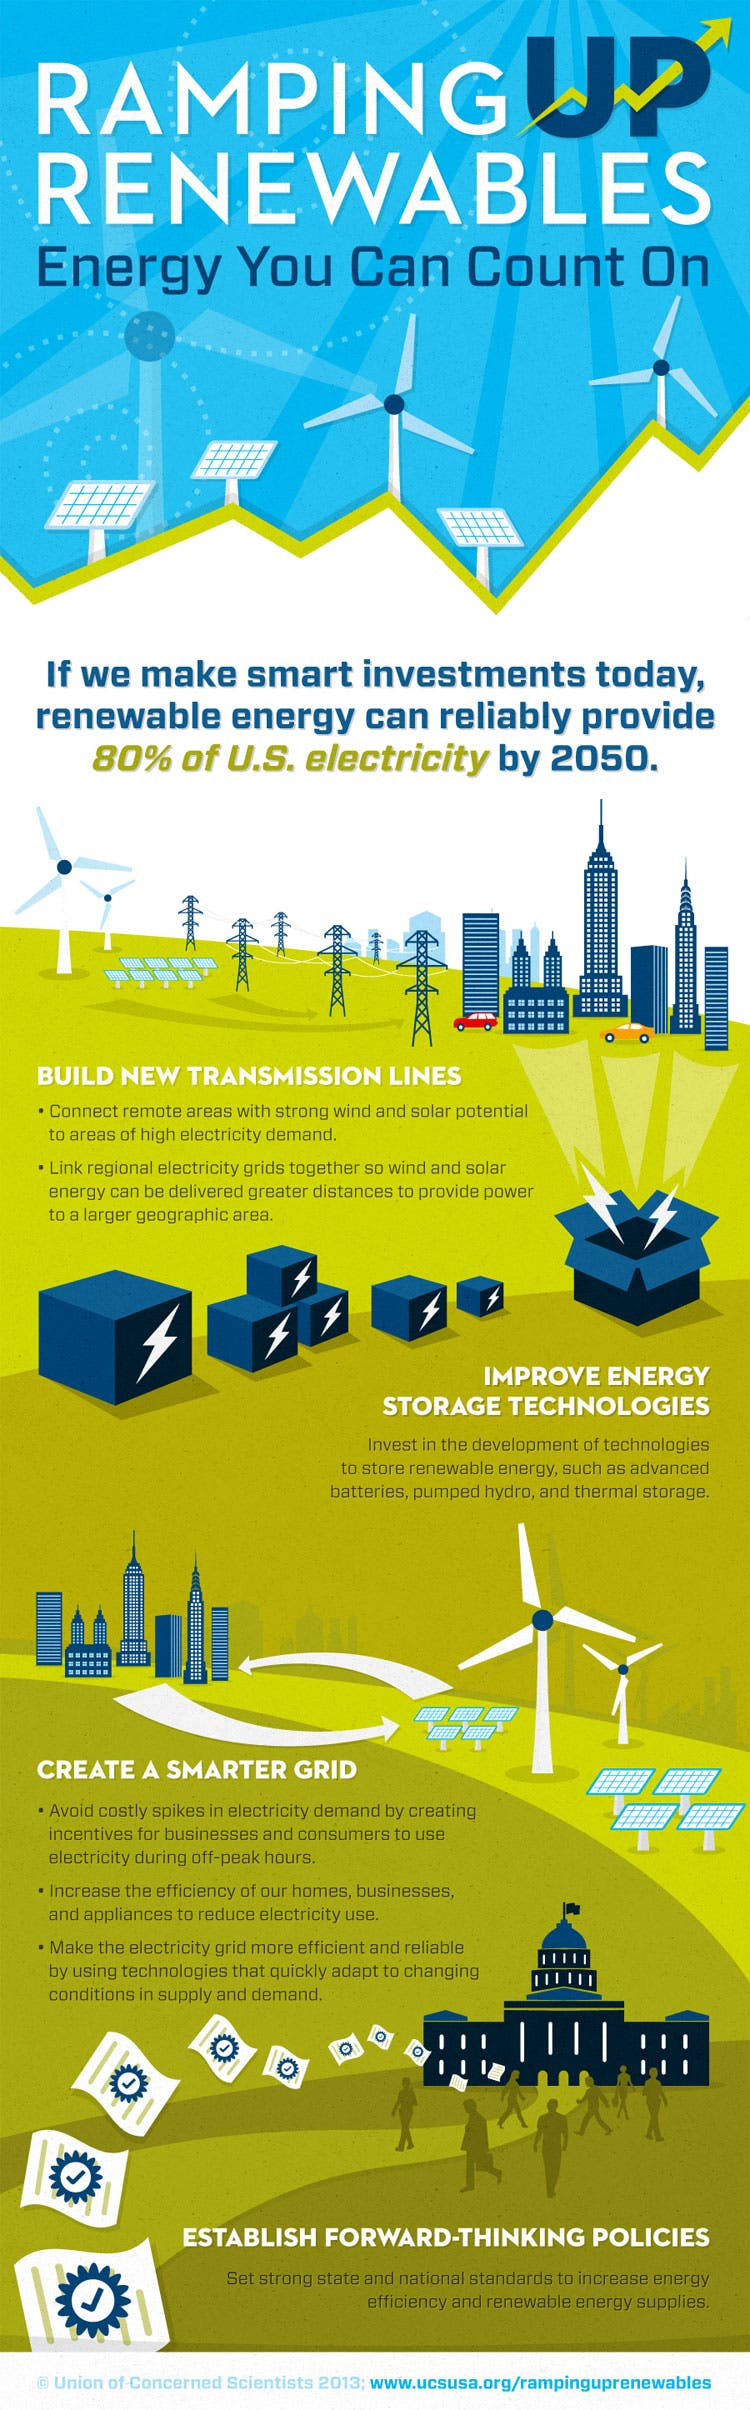 Ramping-Up-Renewables-Infographic_FINAL_Full-Size-Panel-3-Web-Version